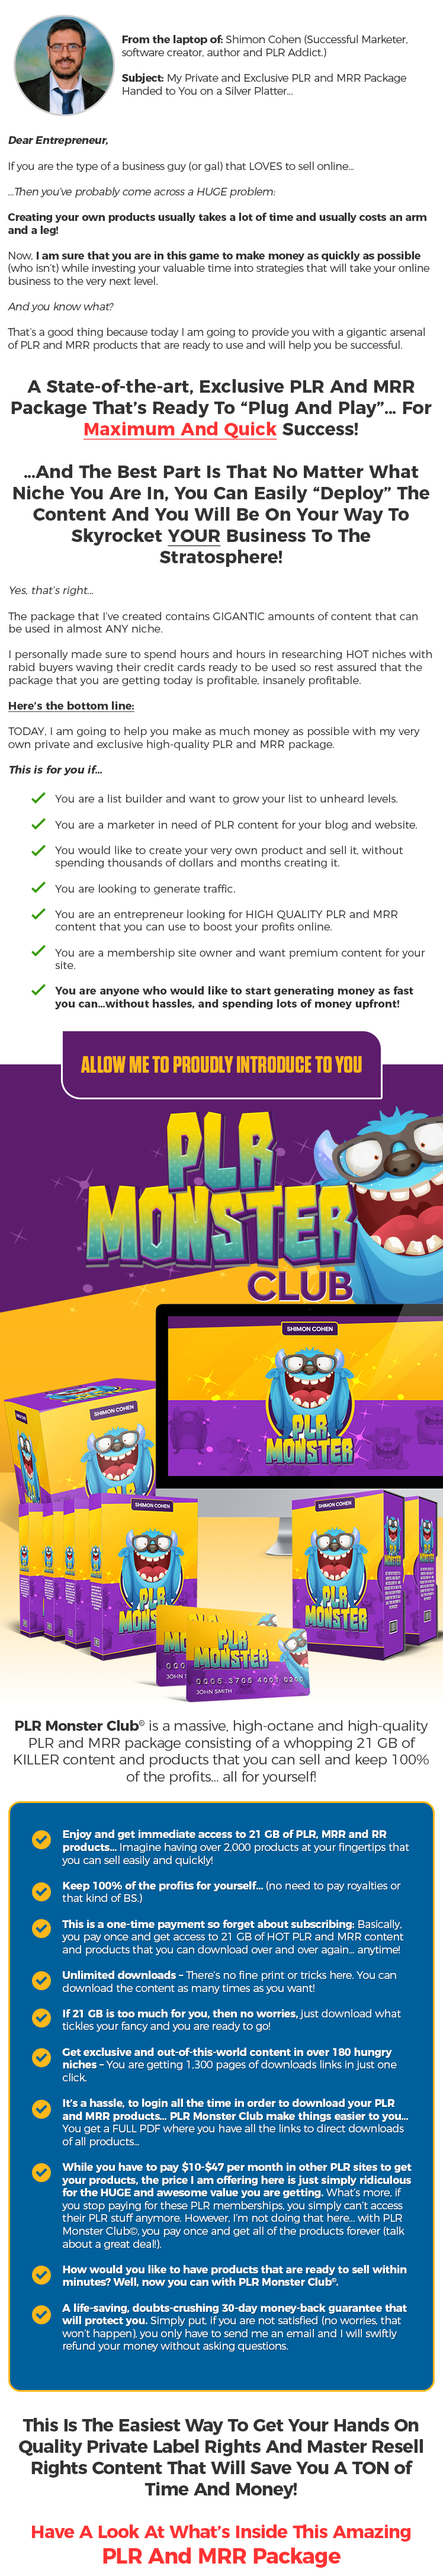 plr monster club